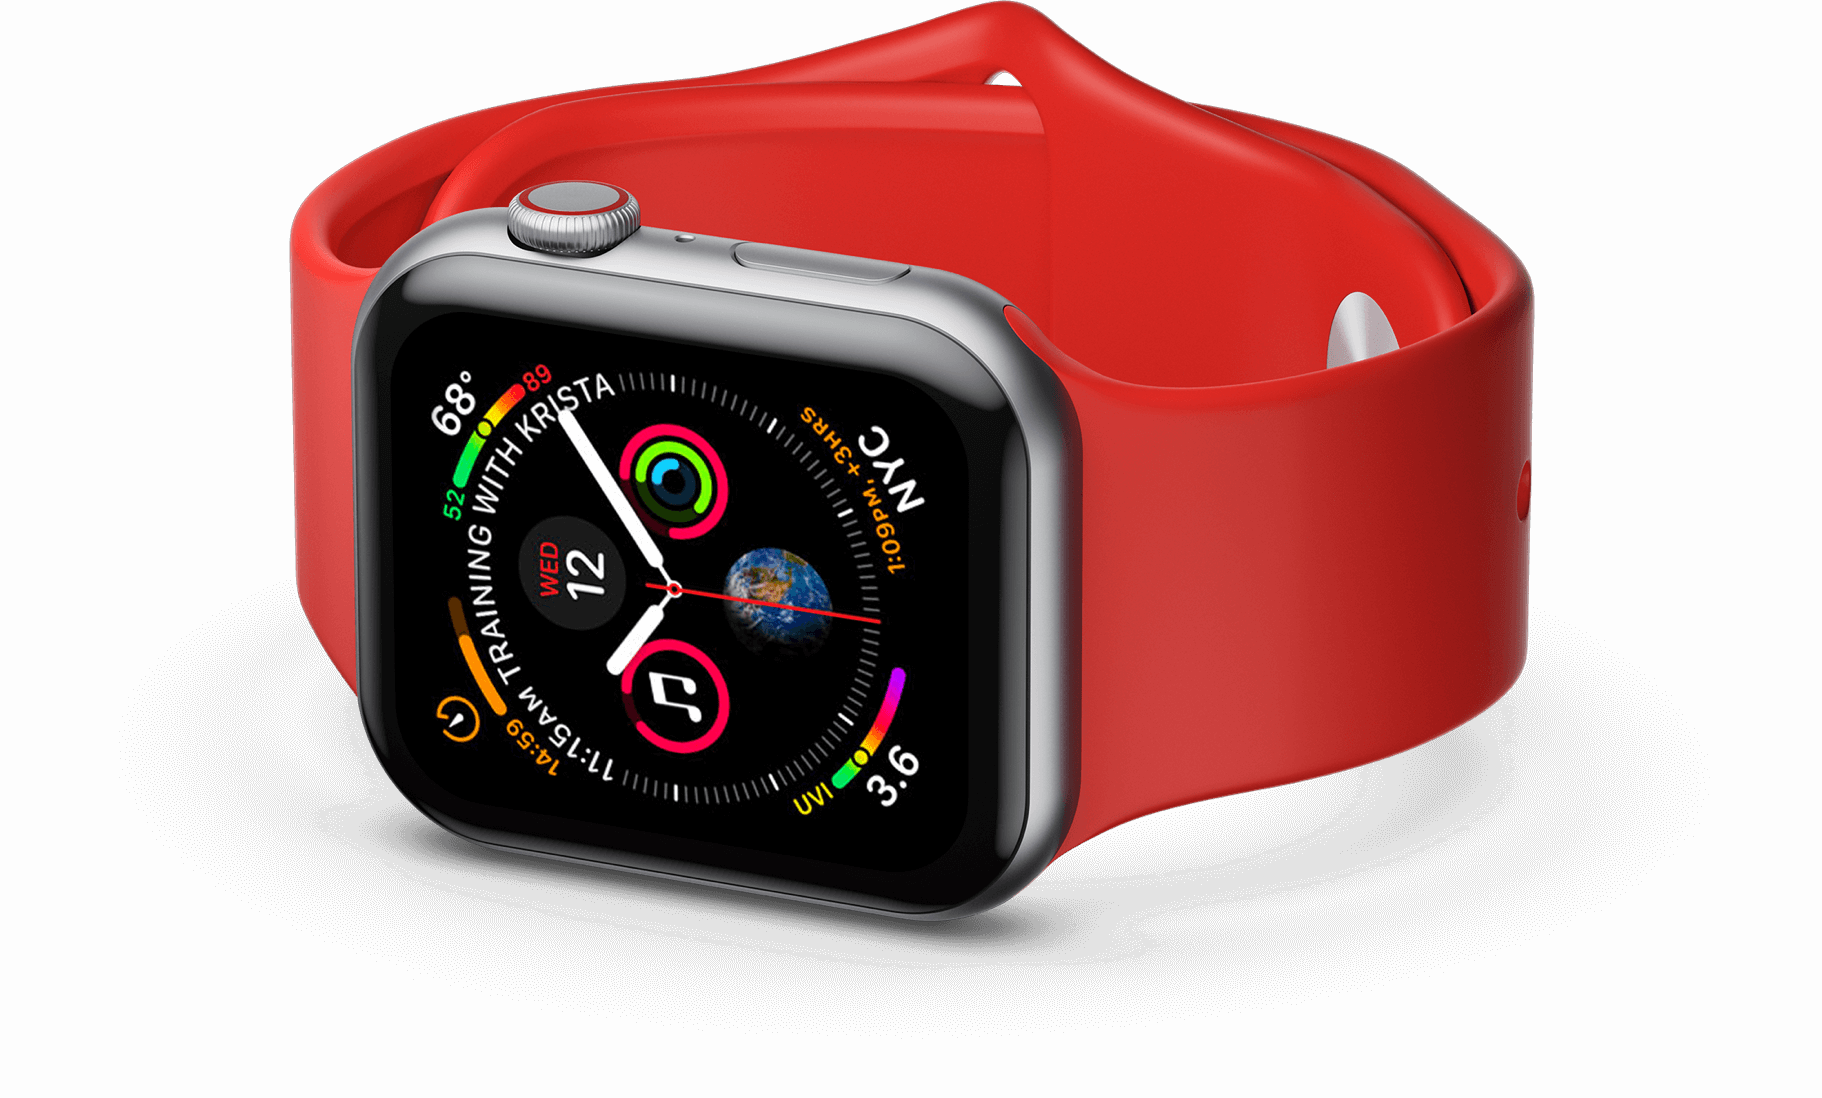 Apple Watch Mockup